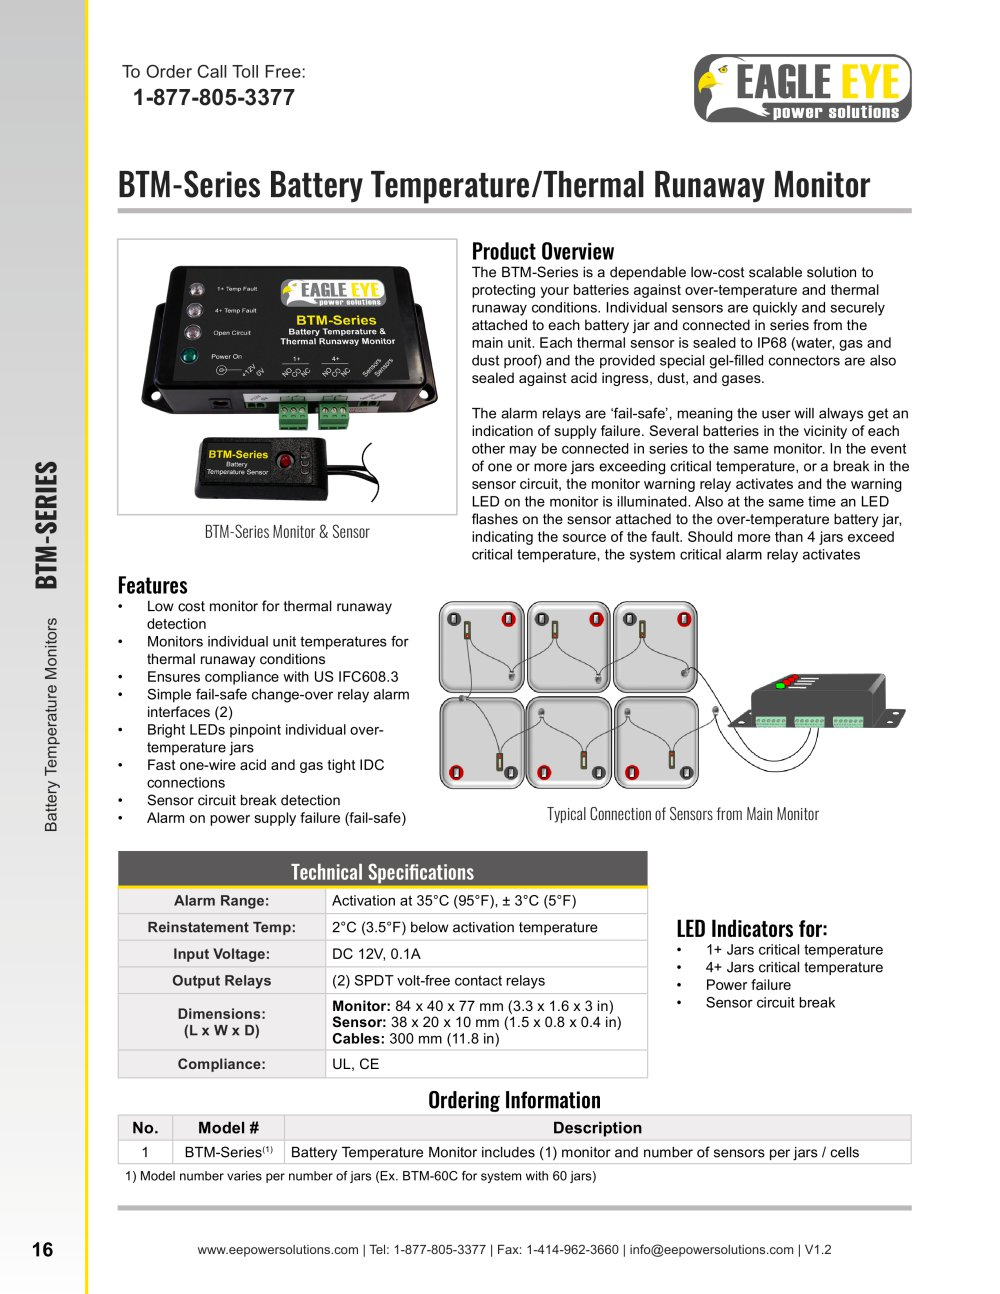 BTMSeries Battery Temperature Thermal Runaway Monitor Eagle - Spdt relay eagle